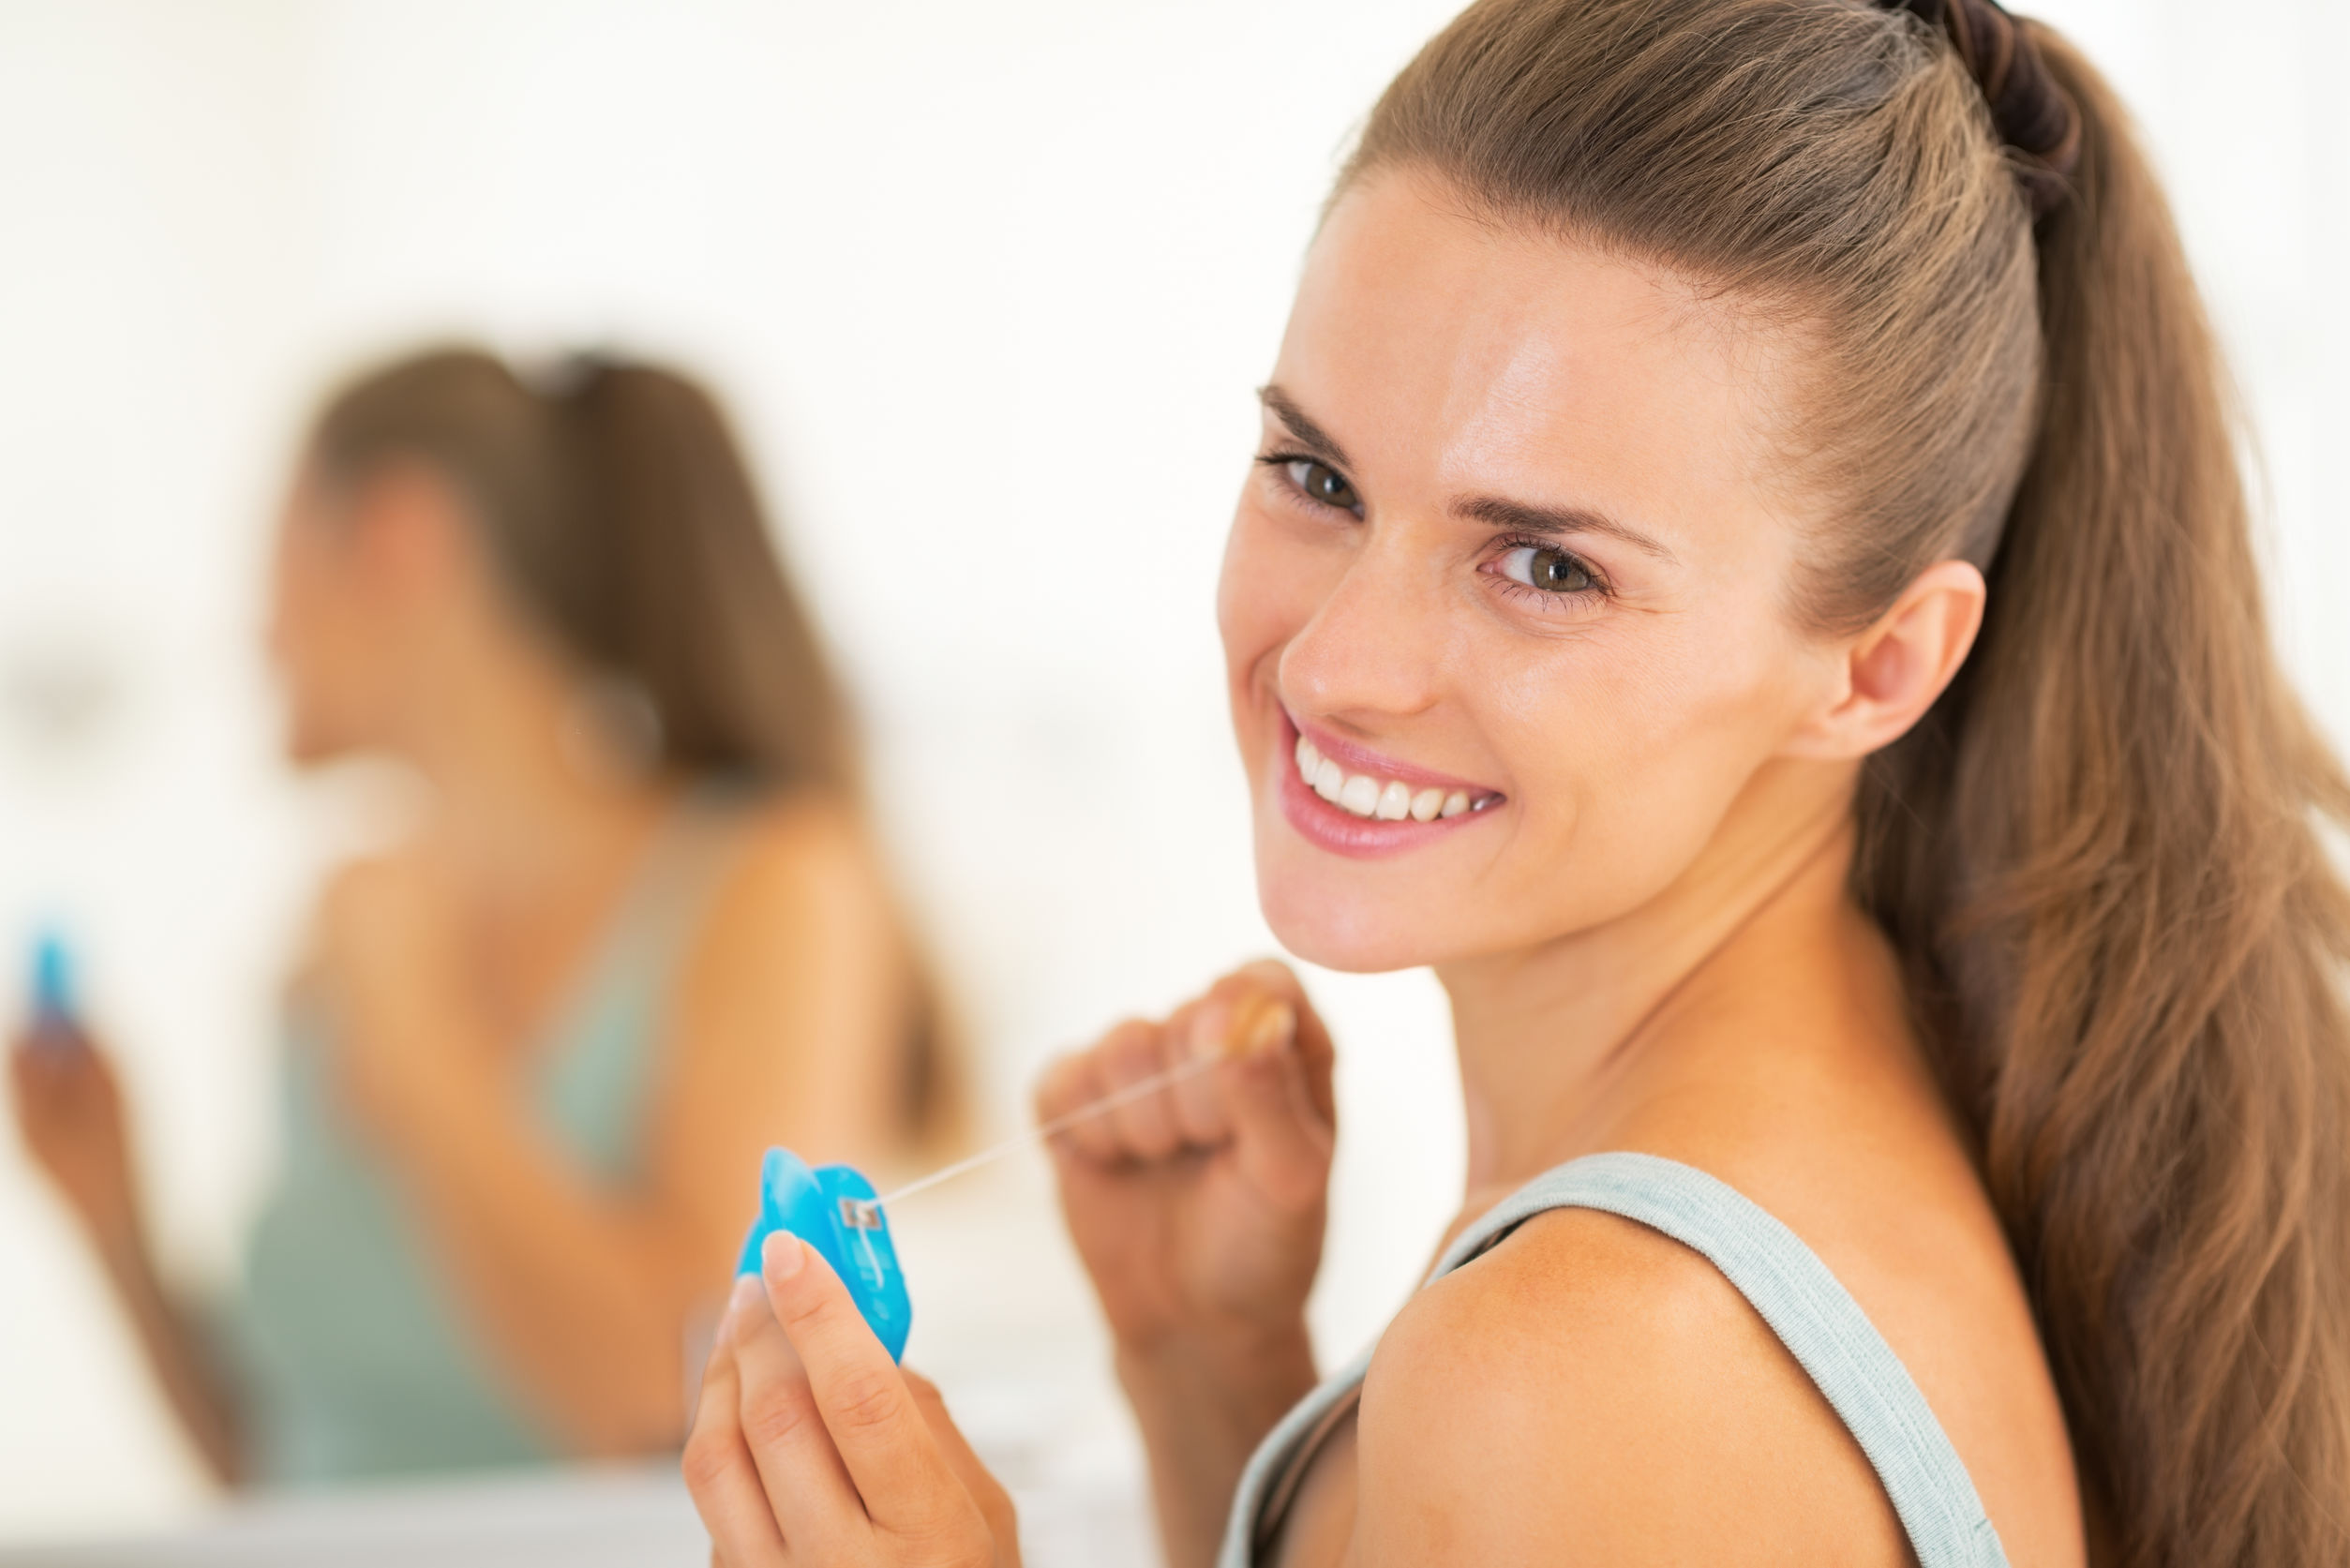 Portrait of happy young woman with dental floss